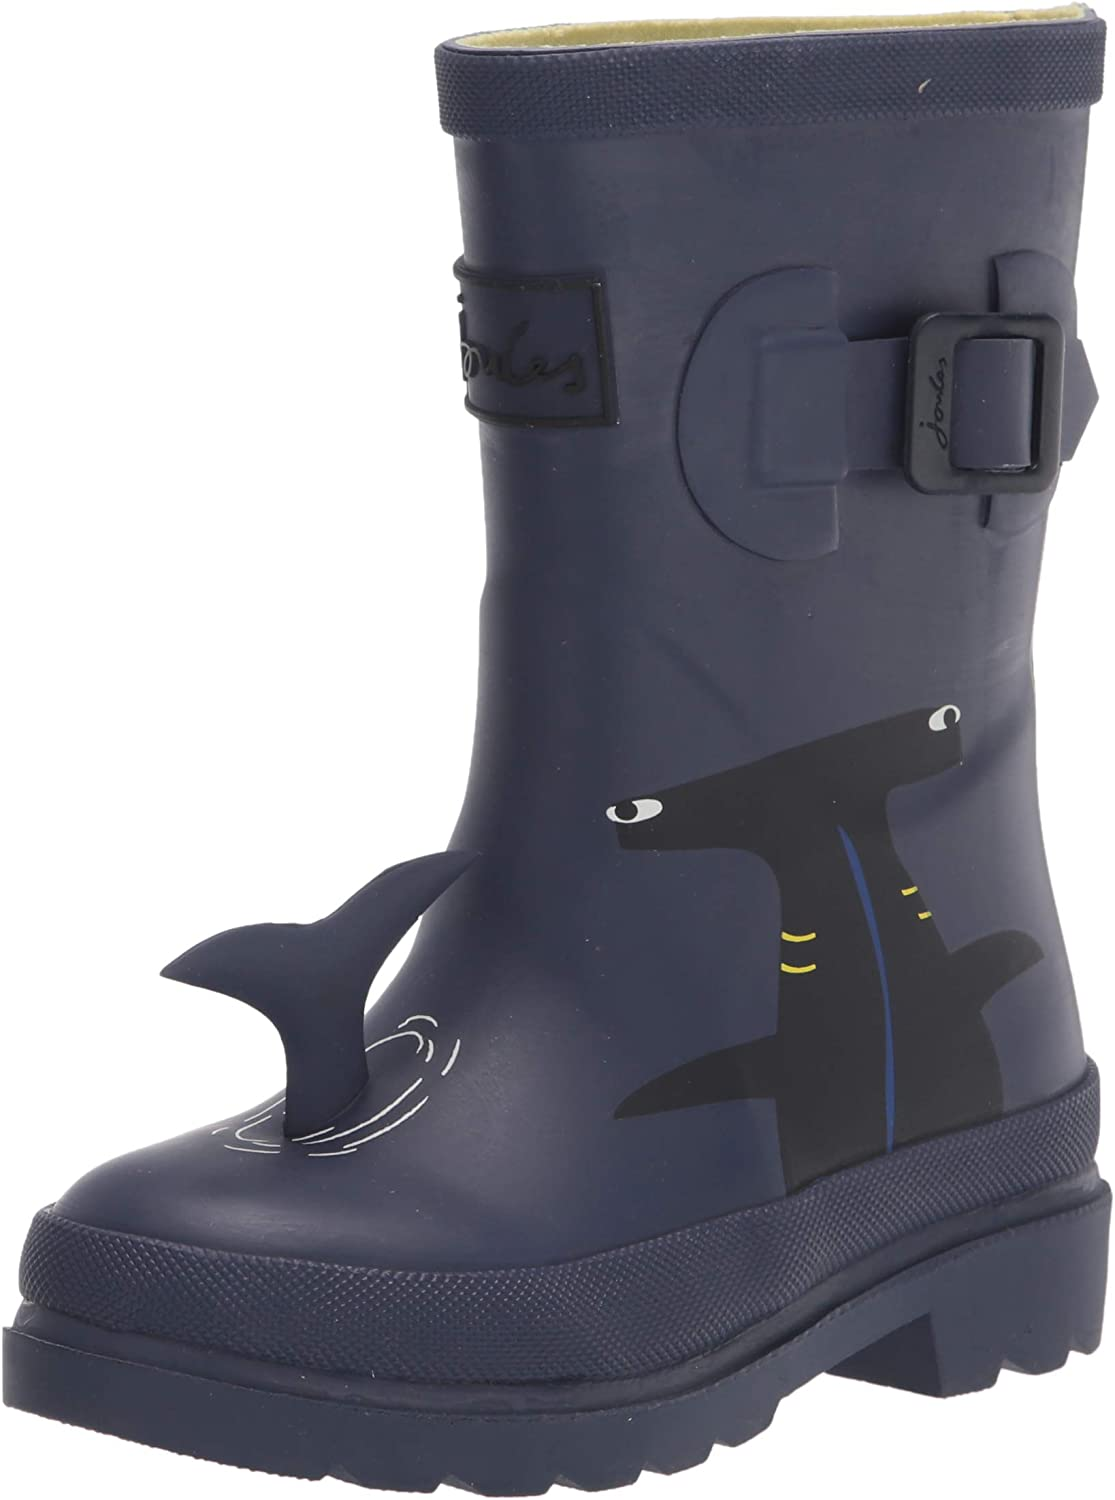 Joules 67% OFF of fixed price Unisex-Child Boot Sales of SALE items from new works Rain